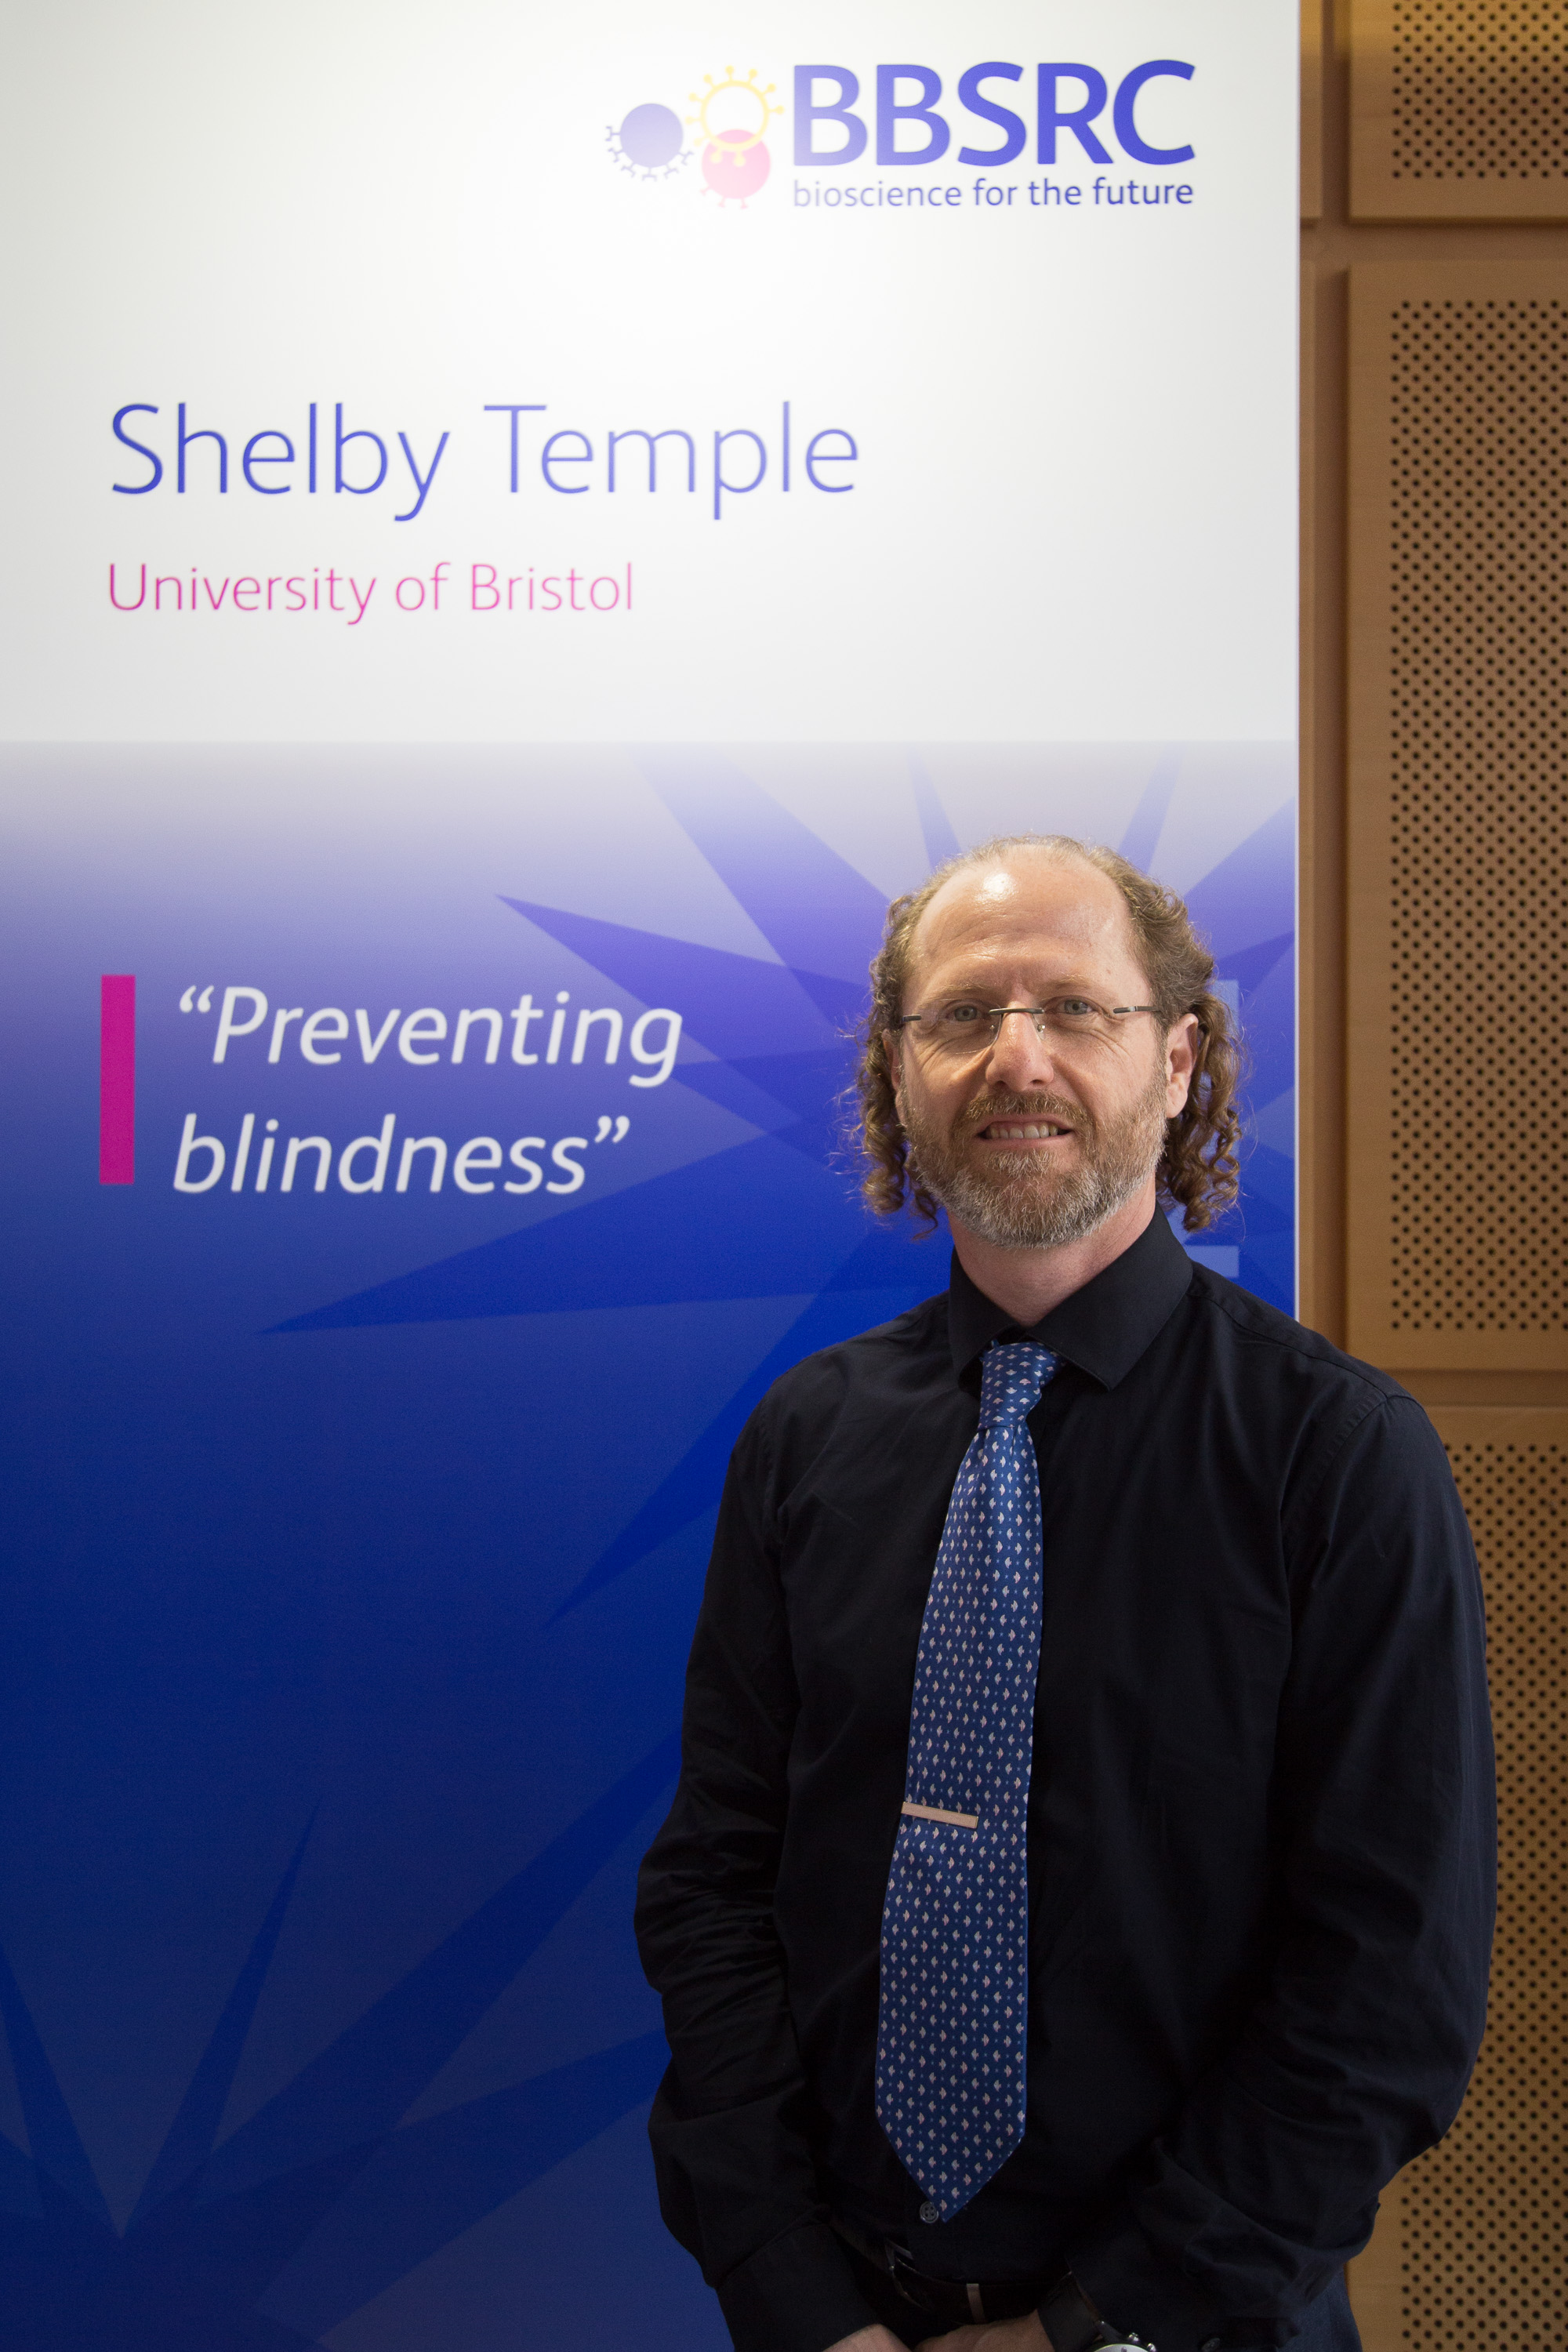 Dr Temple is BBSRC Innovator of the Year